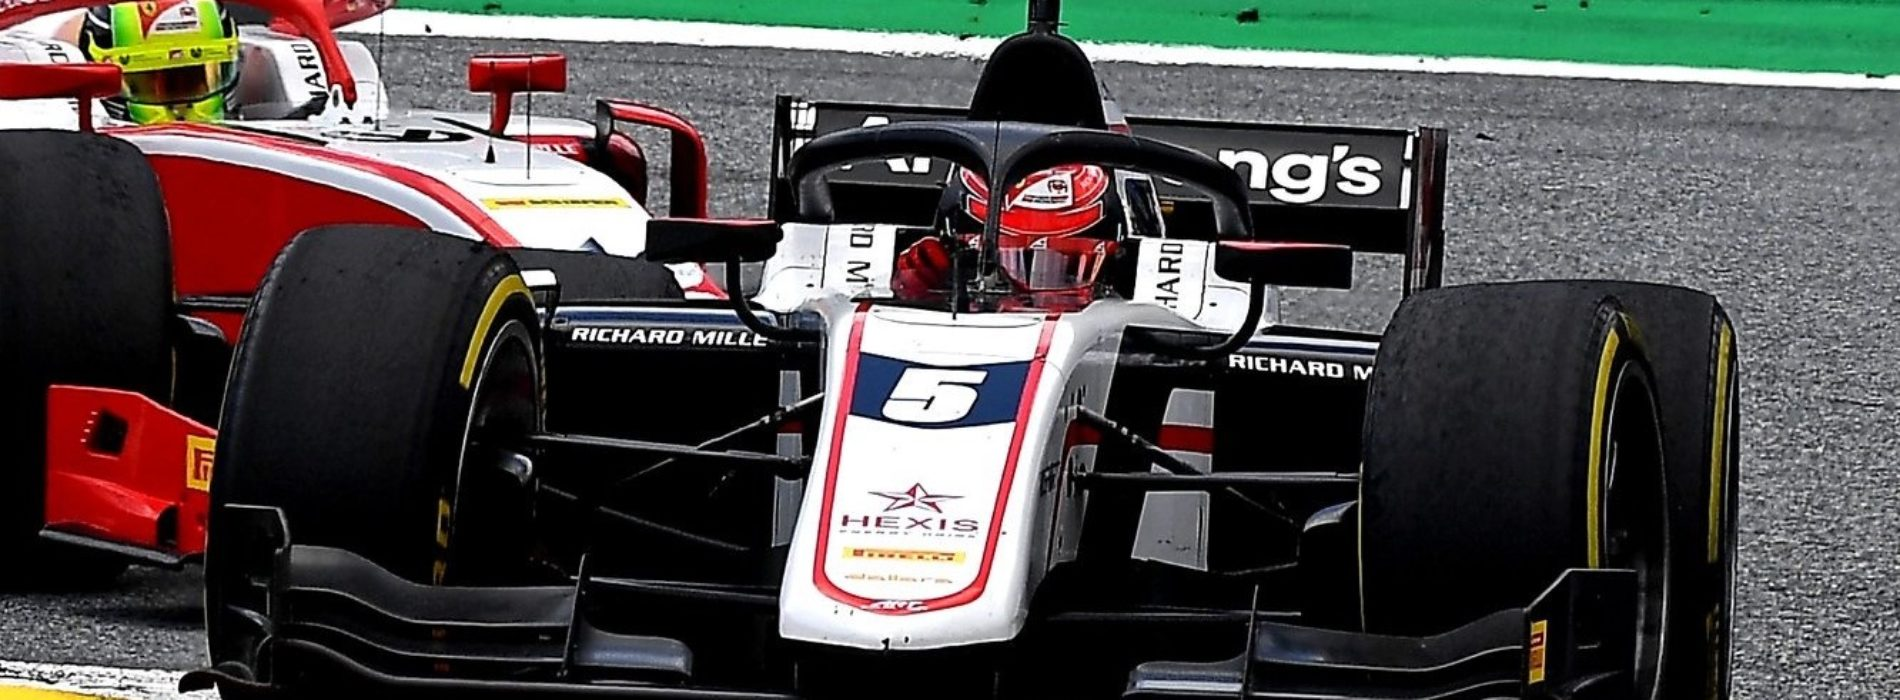 Marcus Armstrong gains 3rd podium in Formula 2 Round 2- Race 2 at Spielberg at the weekend